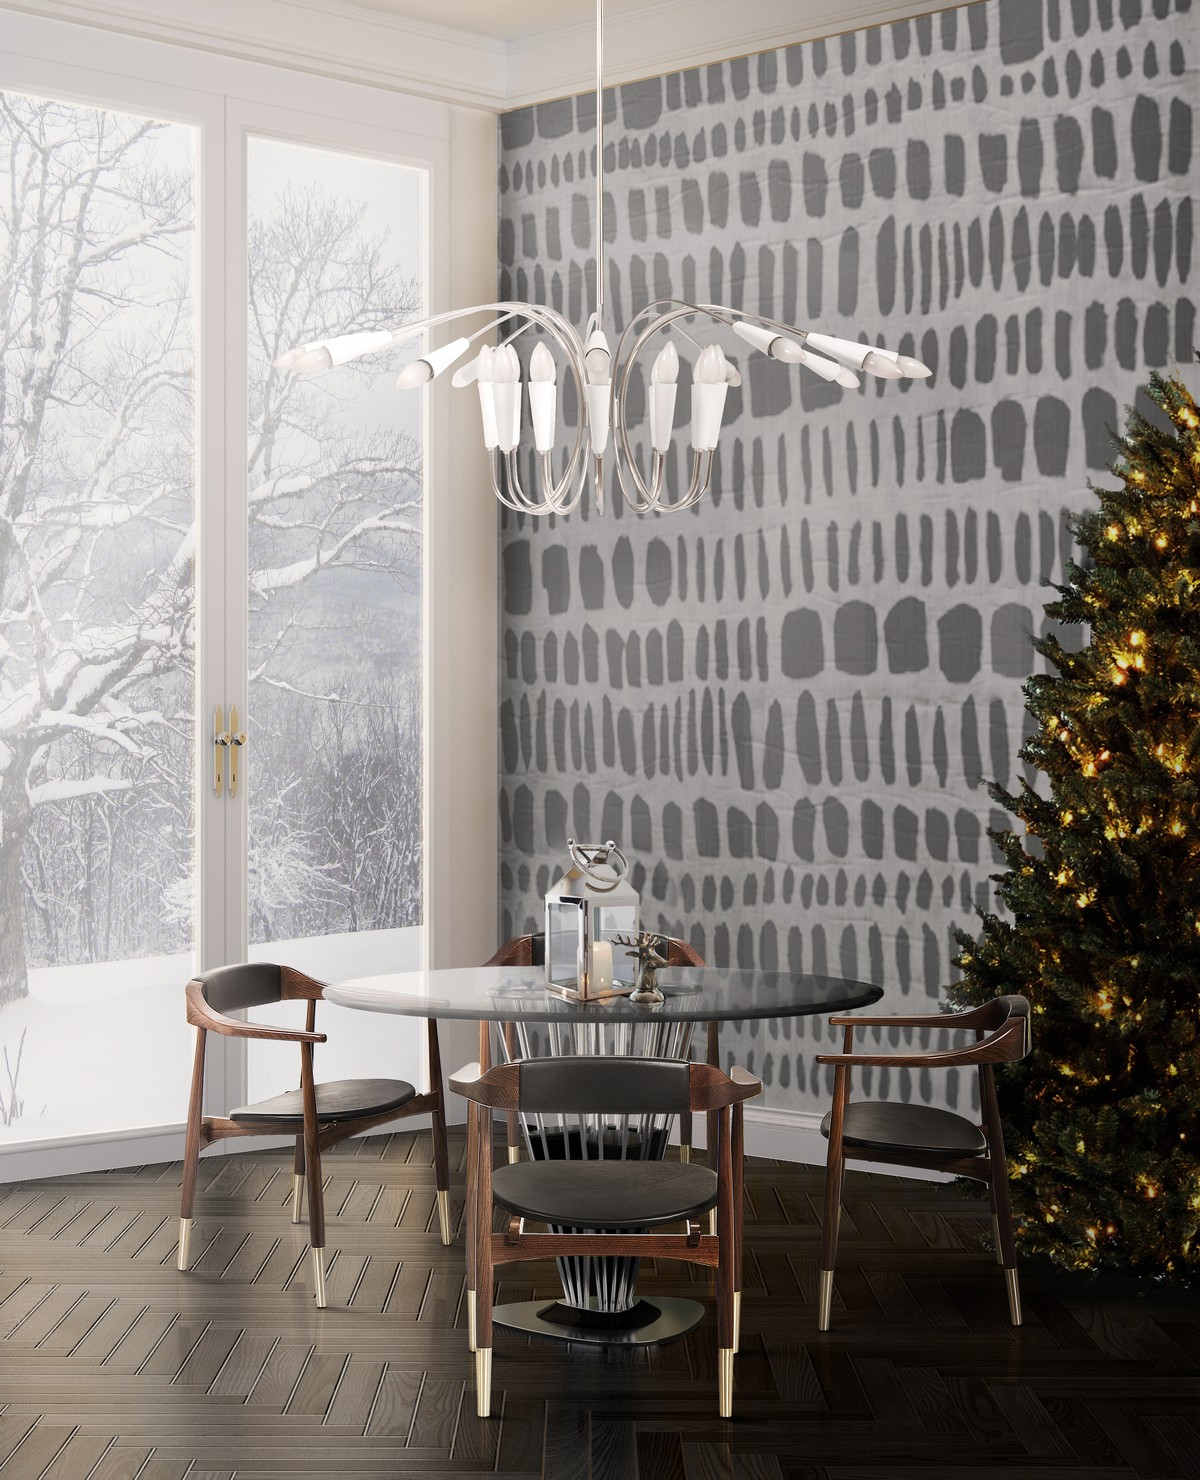 Dining Room Ideas For Christmas dining room ideas Dining Room Ideas For Christmas 2